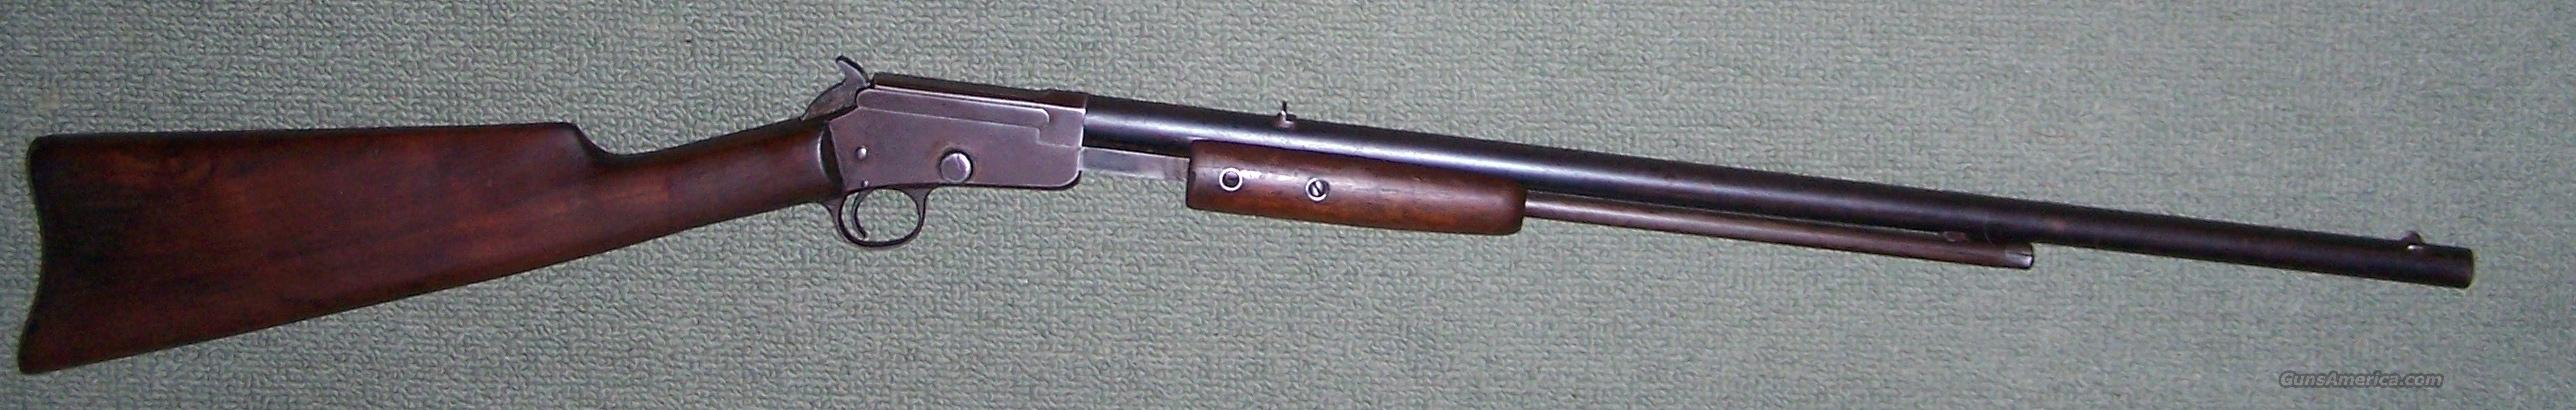 Marlin Model 29 .22 caliber  Guns > Rifles > Marlin Rifles > Modern > Bolt/Pump